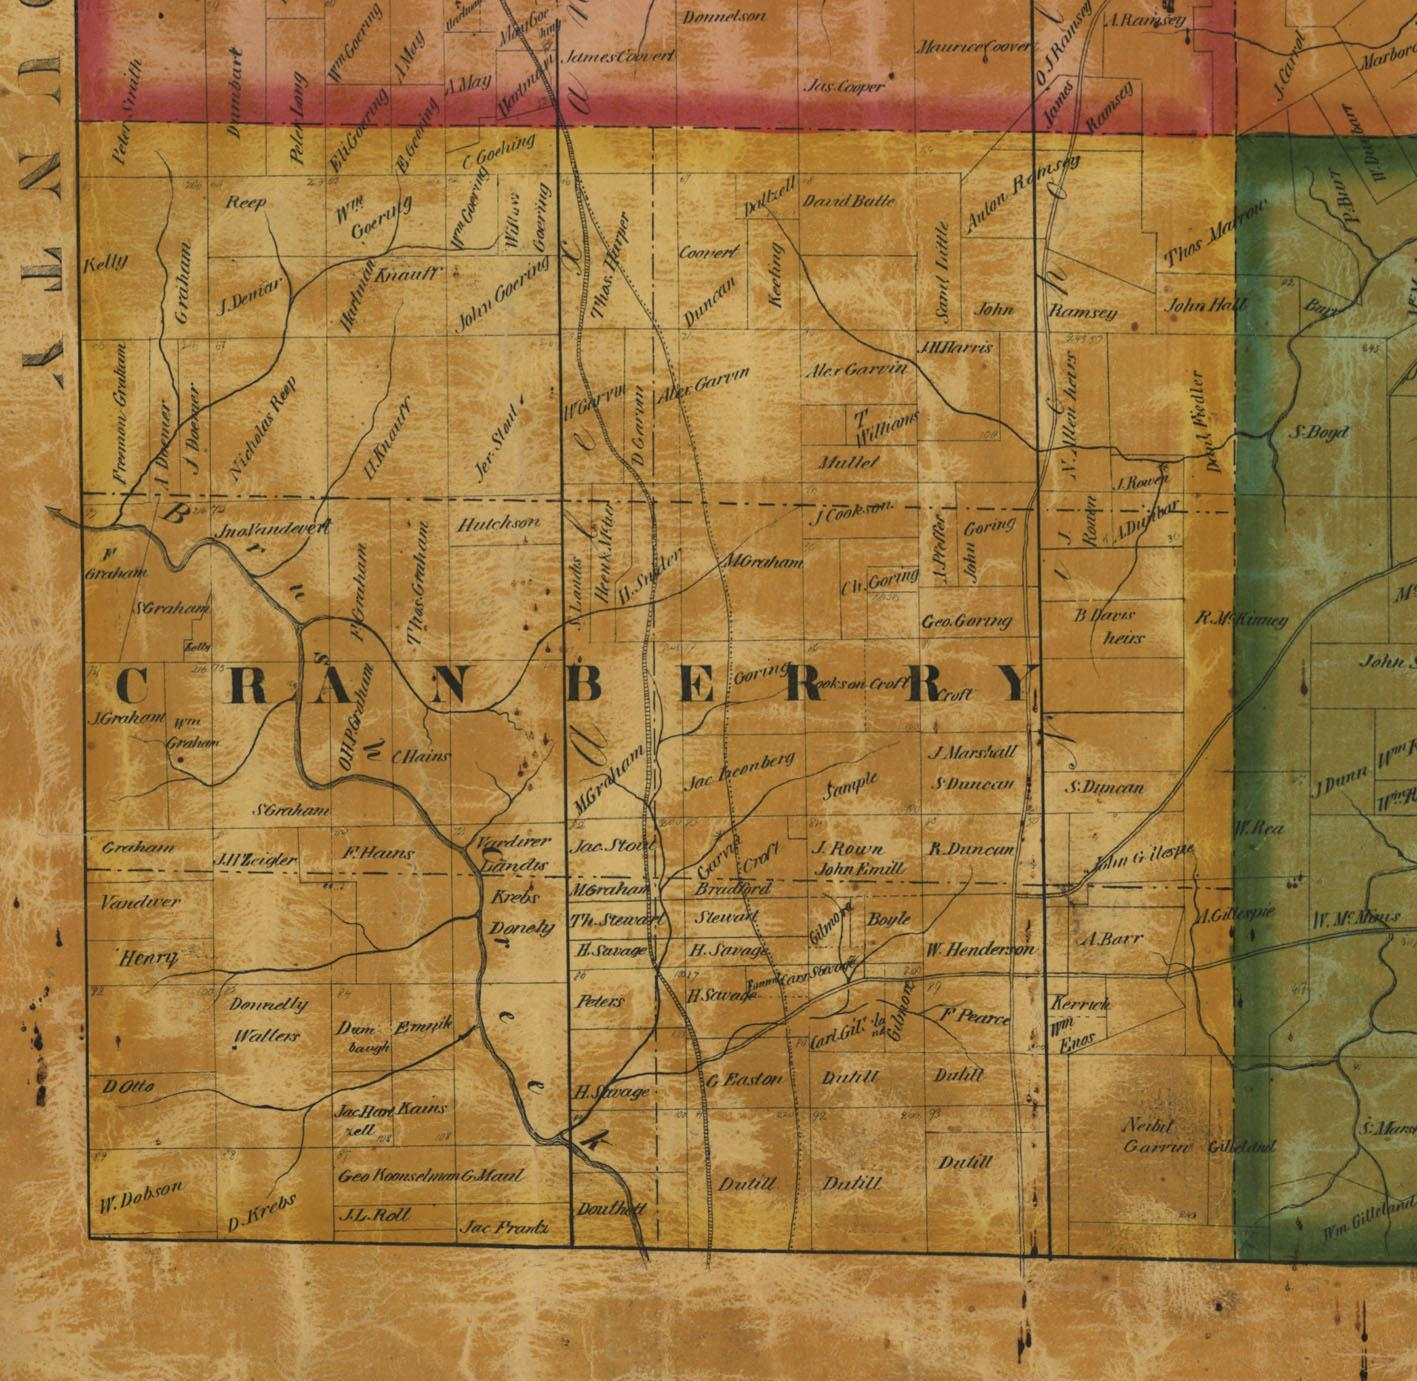 Cranberry Township Map of 1858